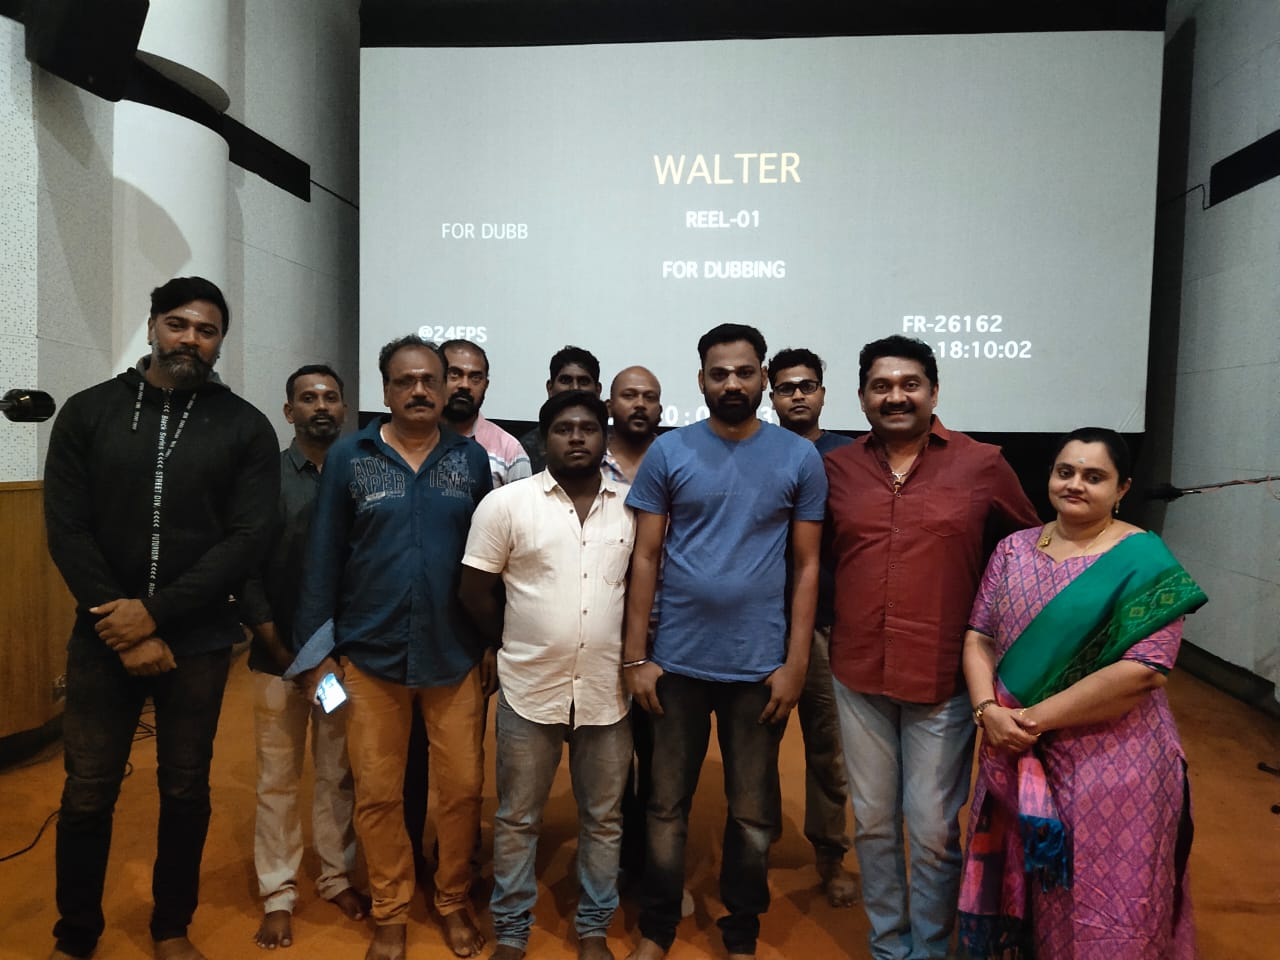 Sibiraj's Walter movie dubbing works started